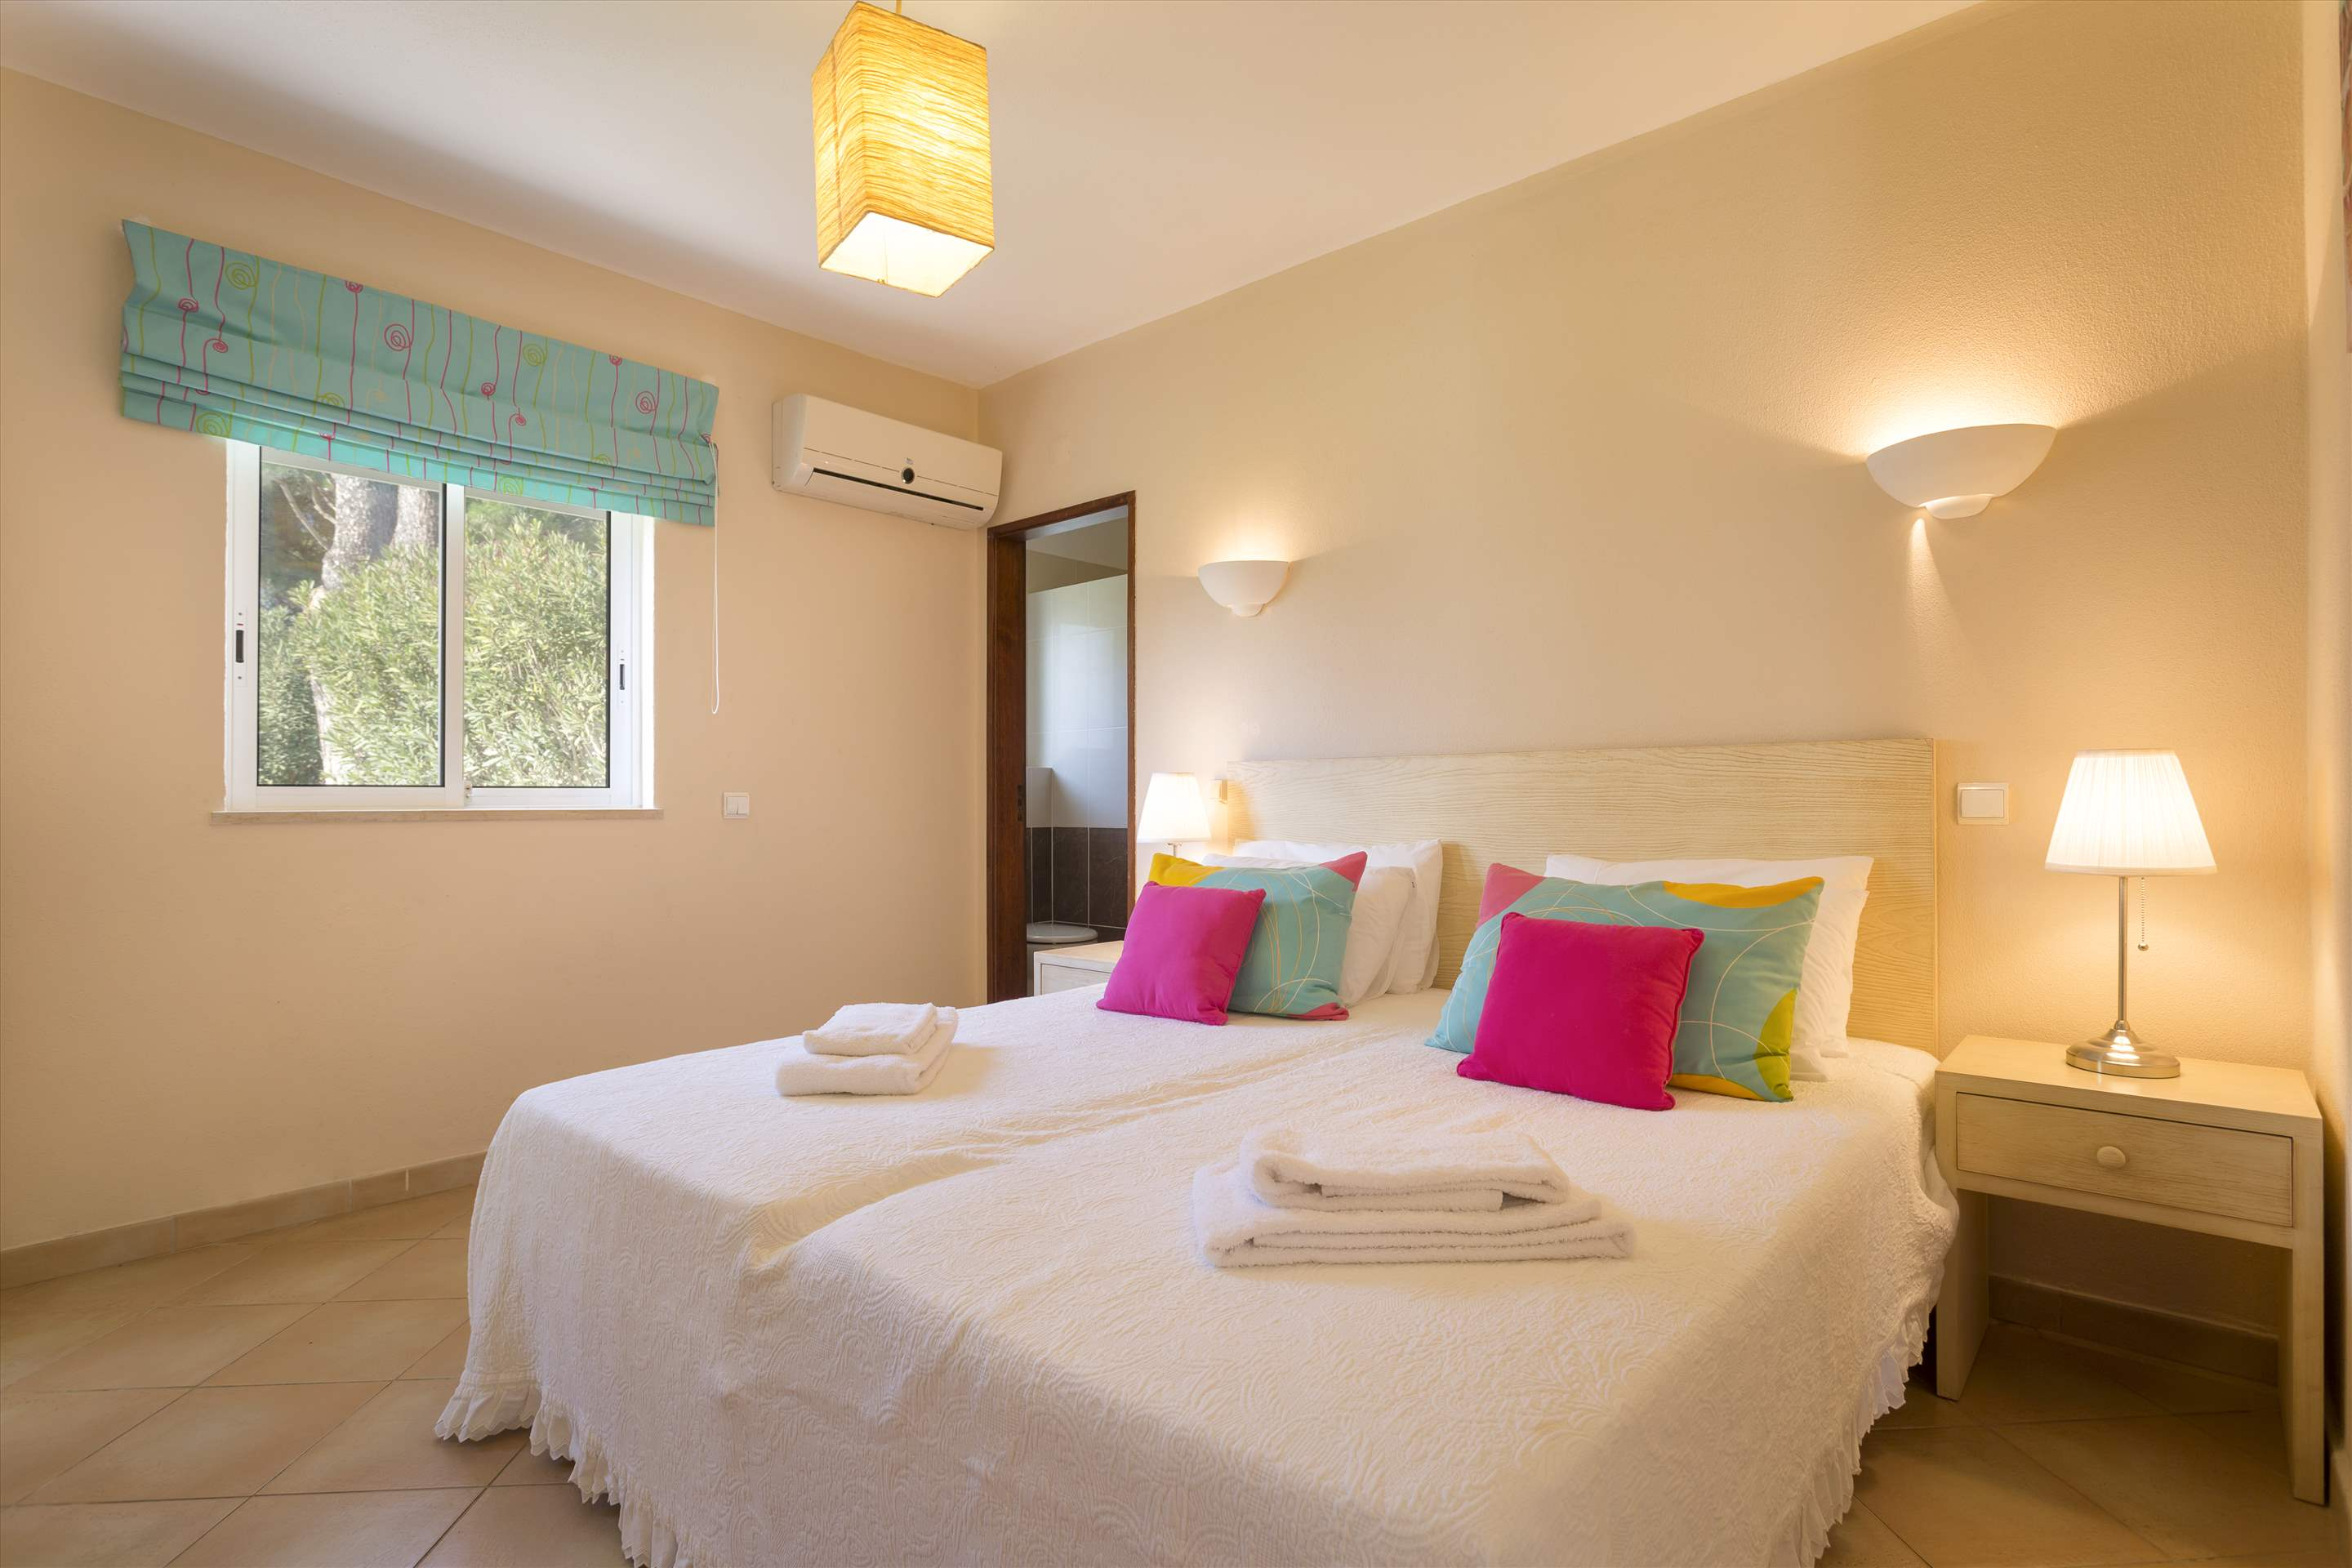 Casa Nova, 3 bedroom villa in Vilamoura Area, Algarve Photo #19